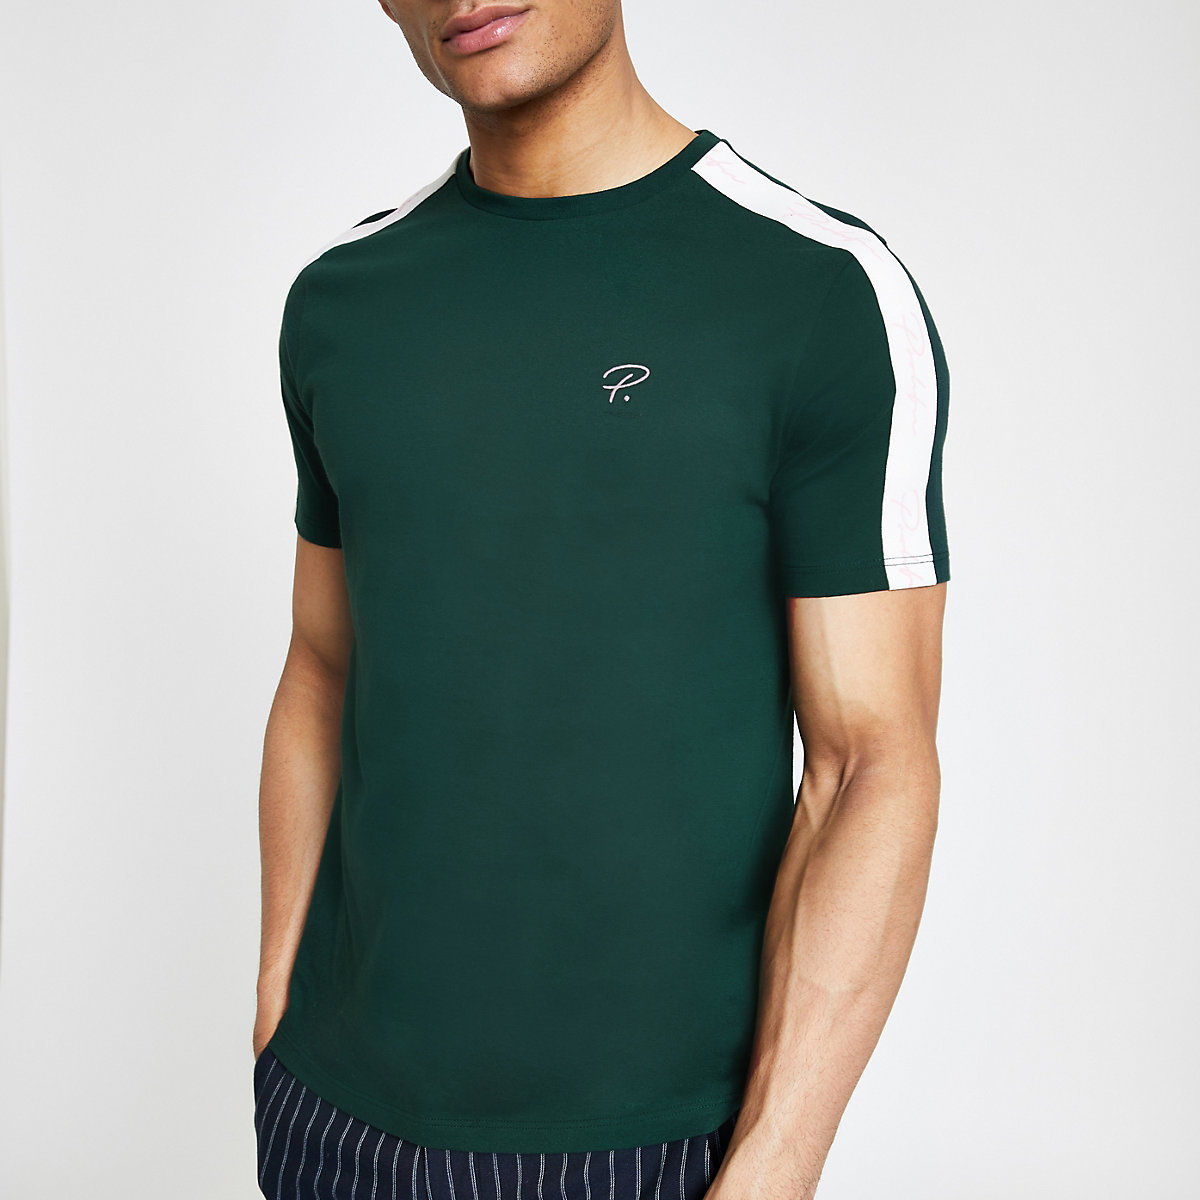 Green muscle fit 'Prolific' taped T-shirt